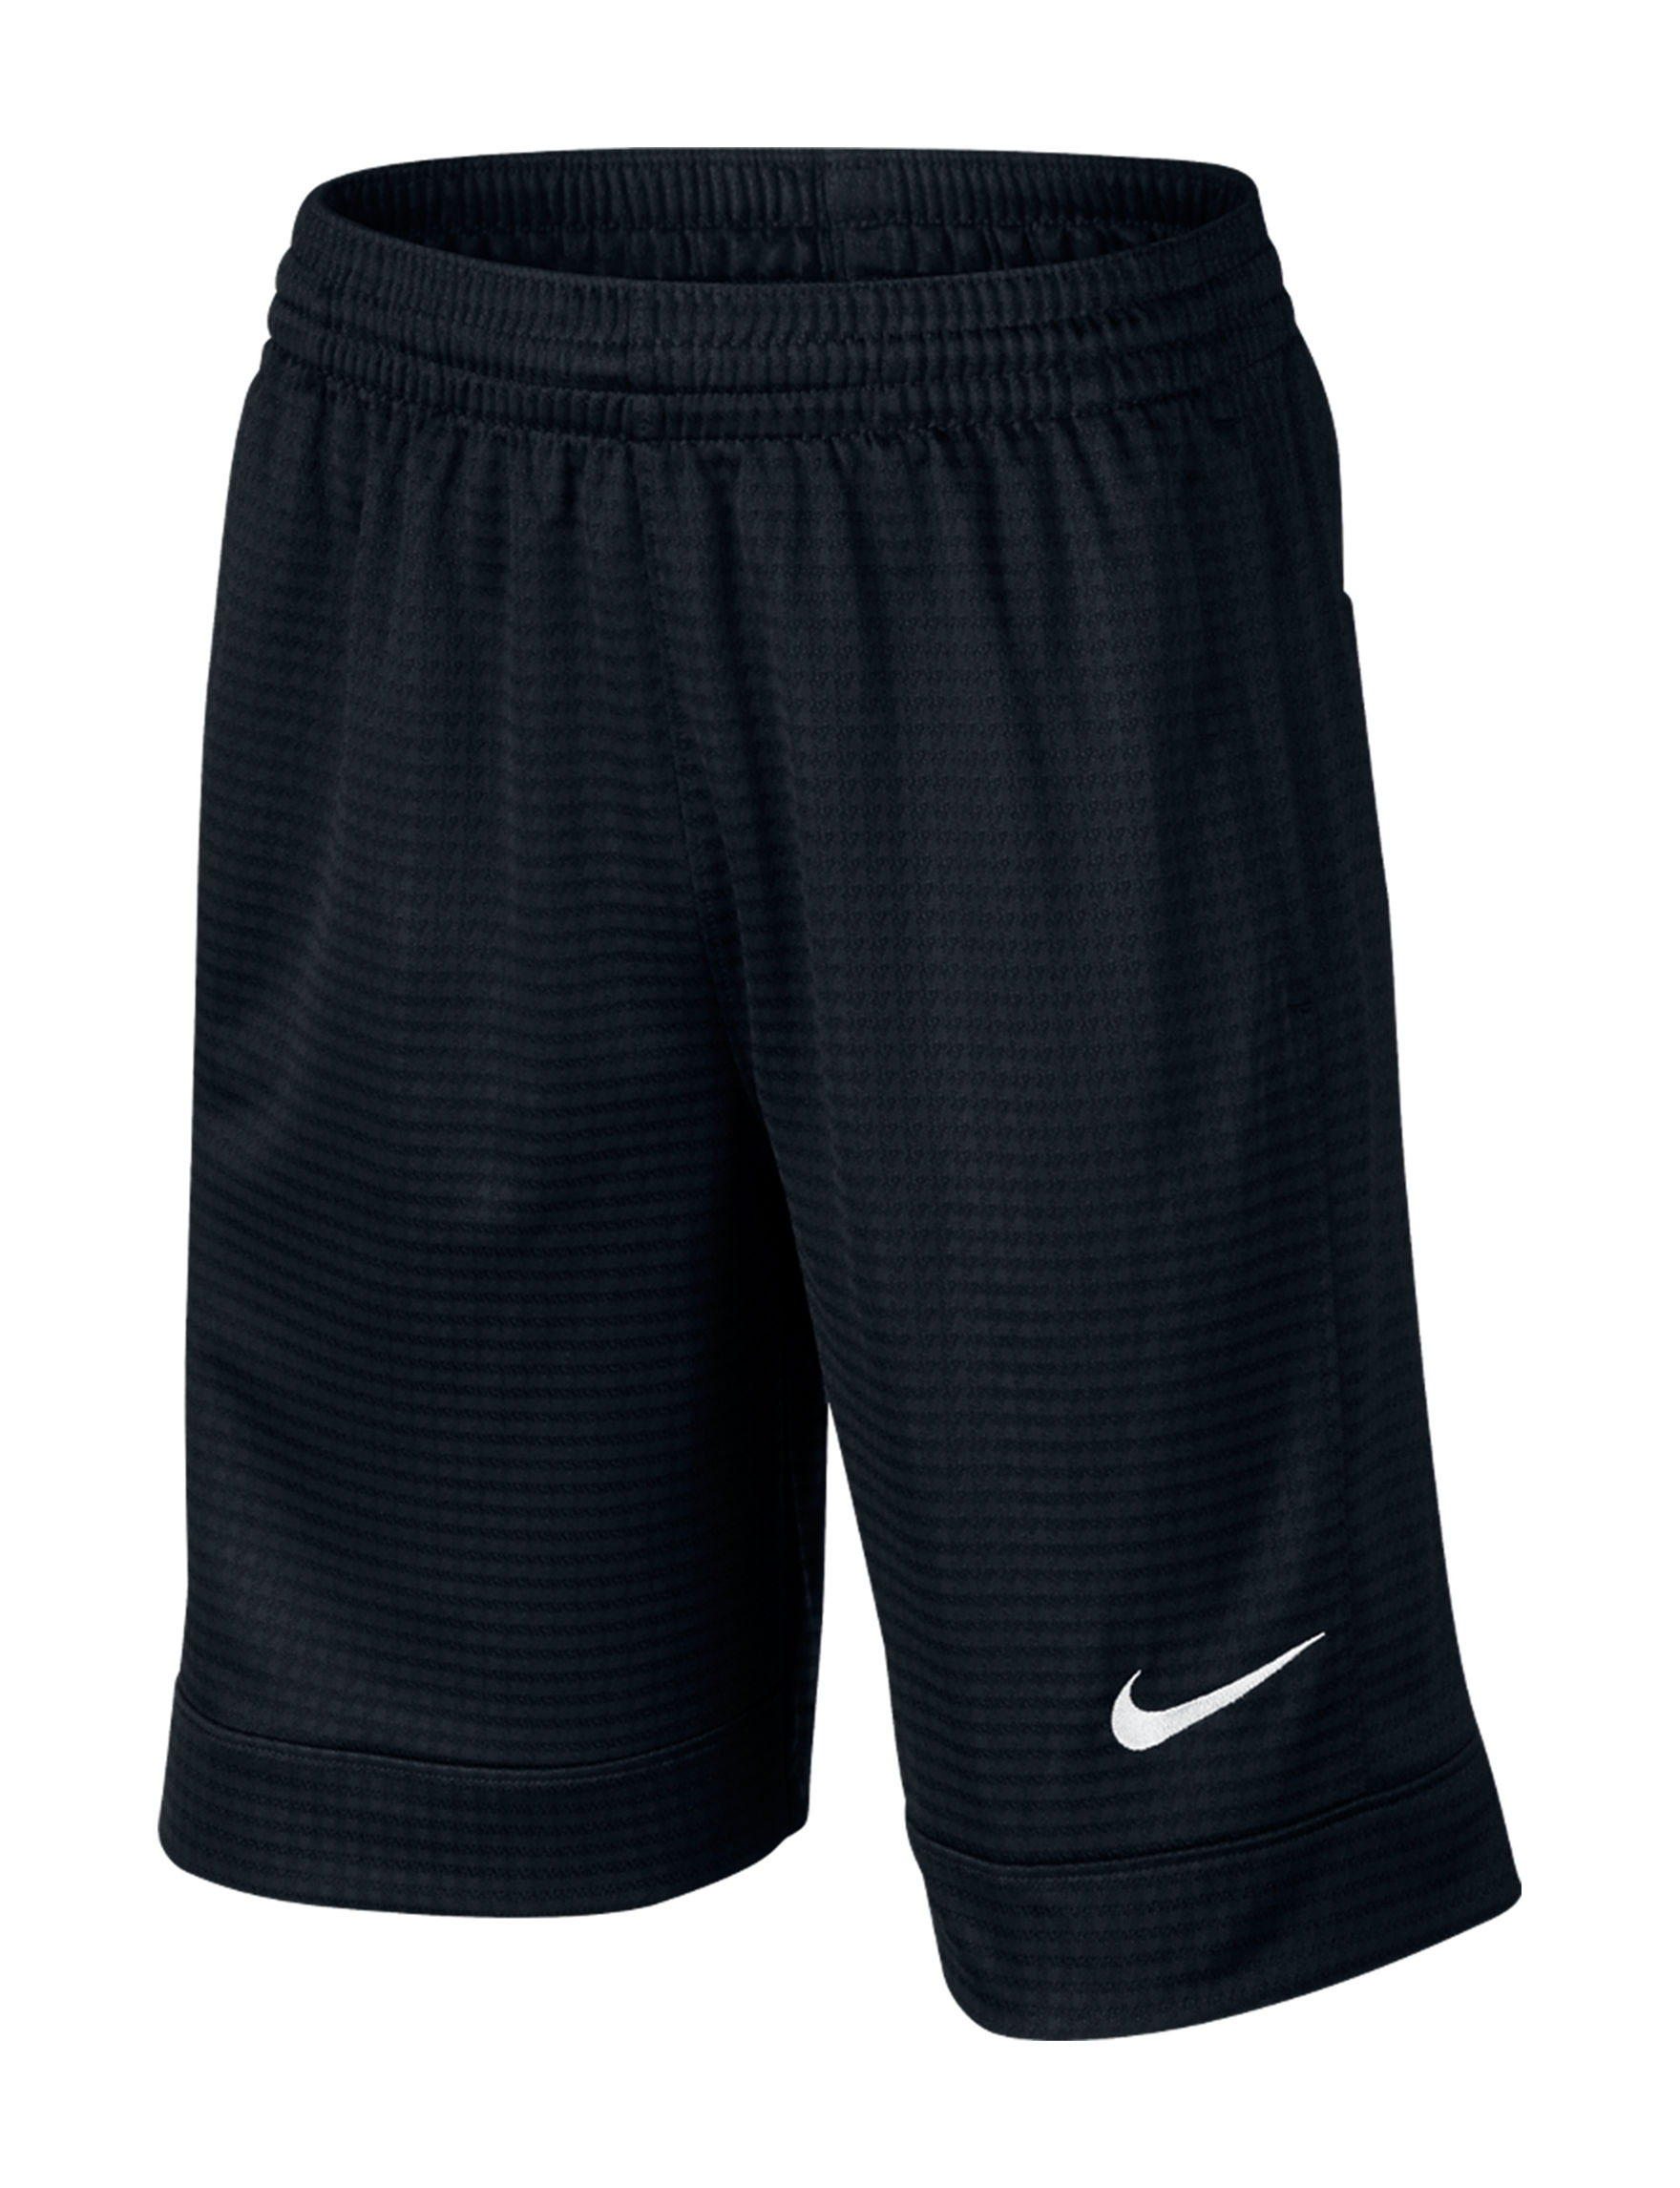 Nike Black Relaxed